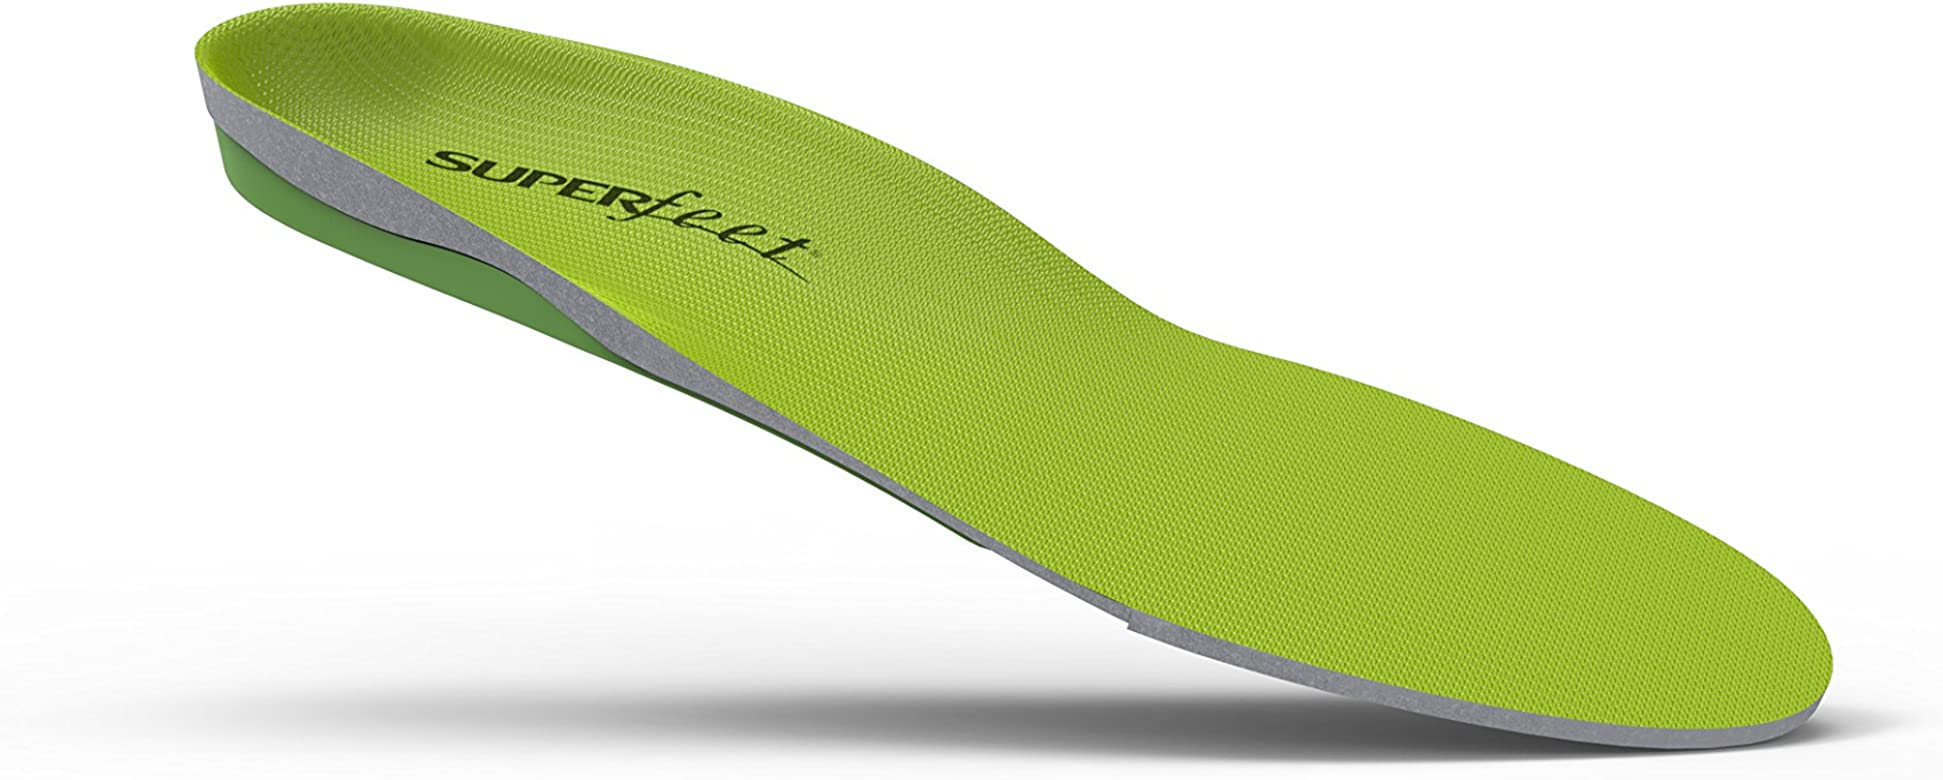 Superfeet GREEN Insoles, Professional-Grade High Arch Orthotic Insert for Maximum Support, Unisex, Green